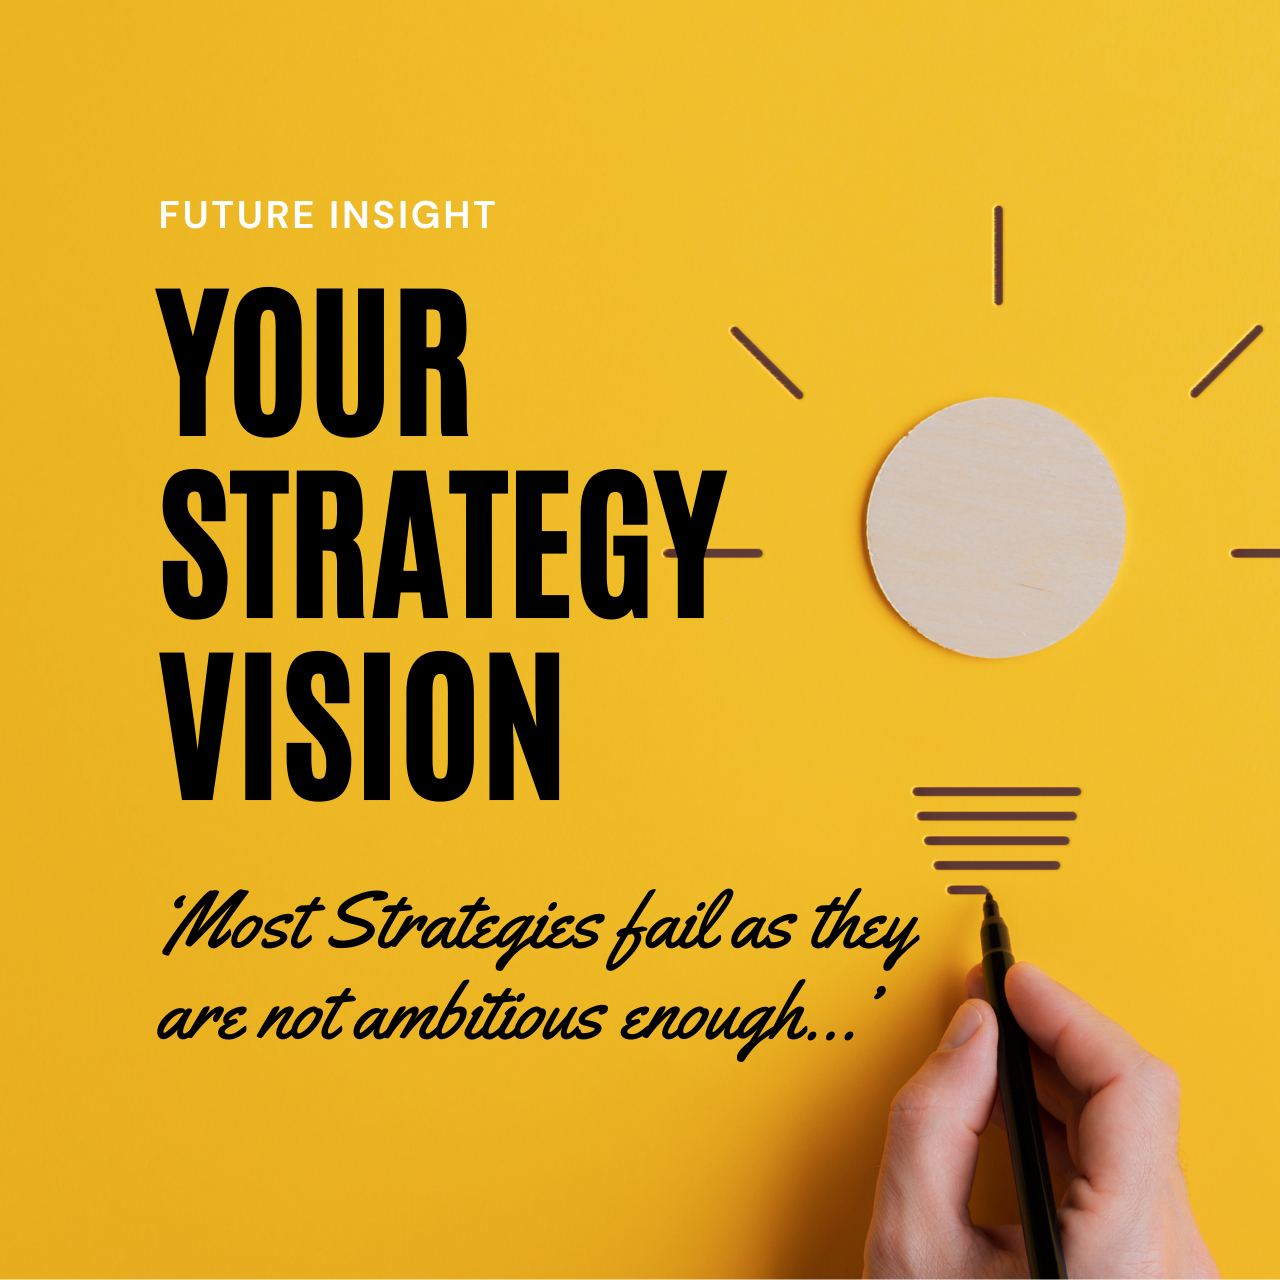 Your Strategy Vision